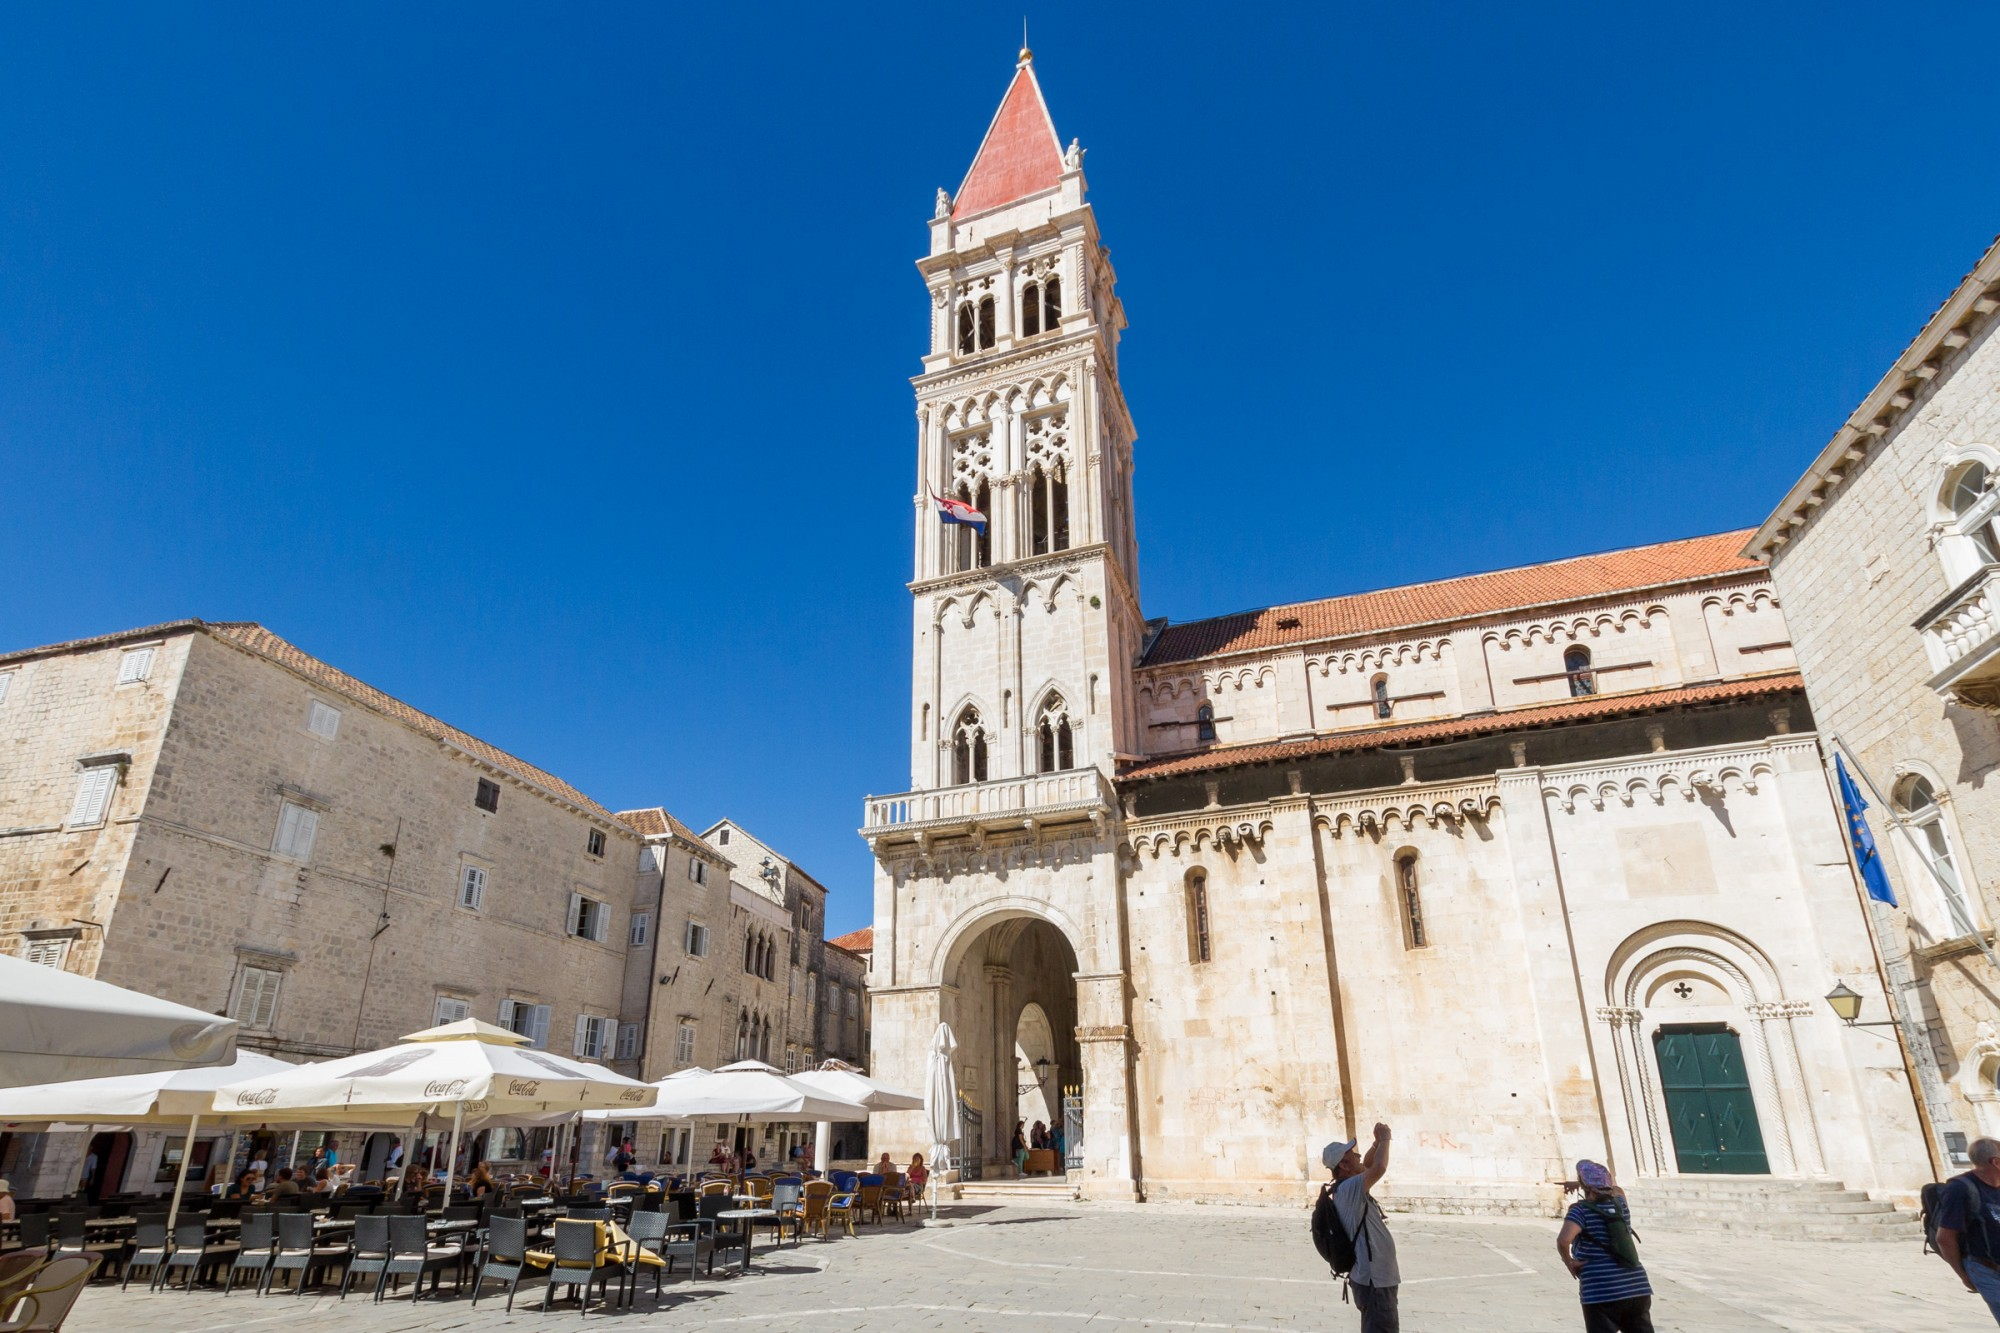 TROGIR one of the BEST PLACES TO VISIT IN CROATIA